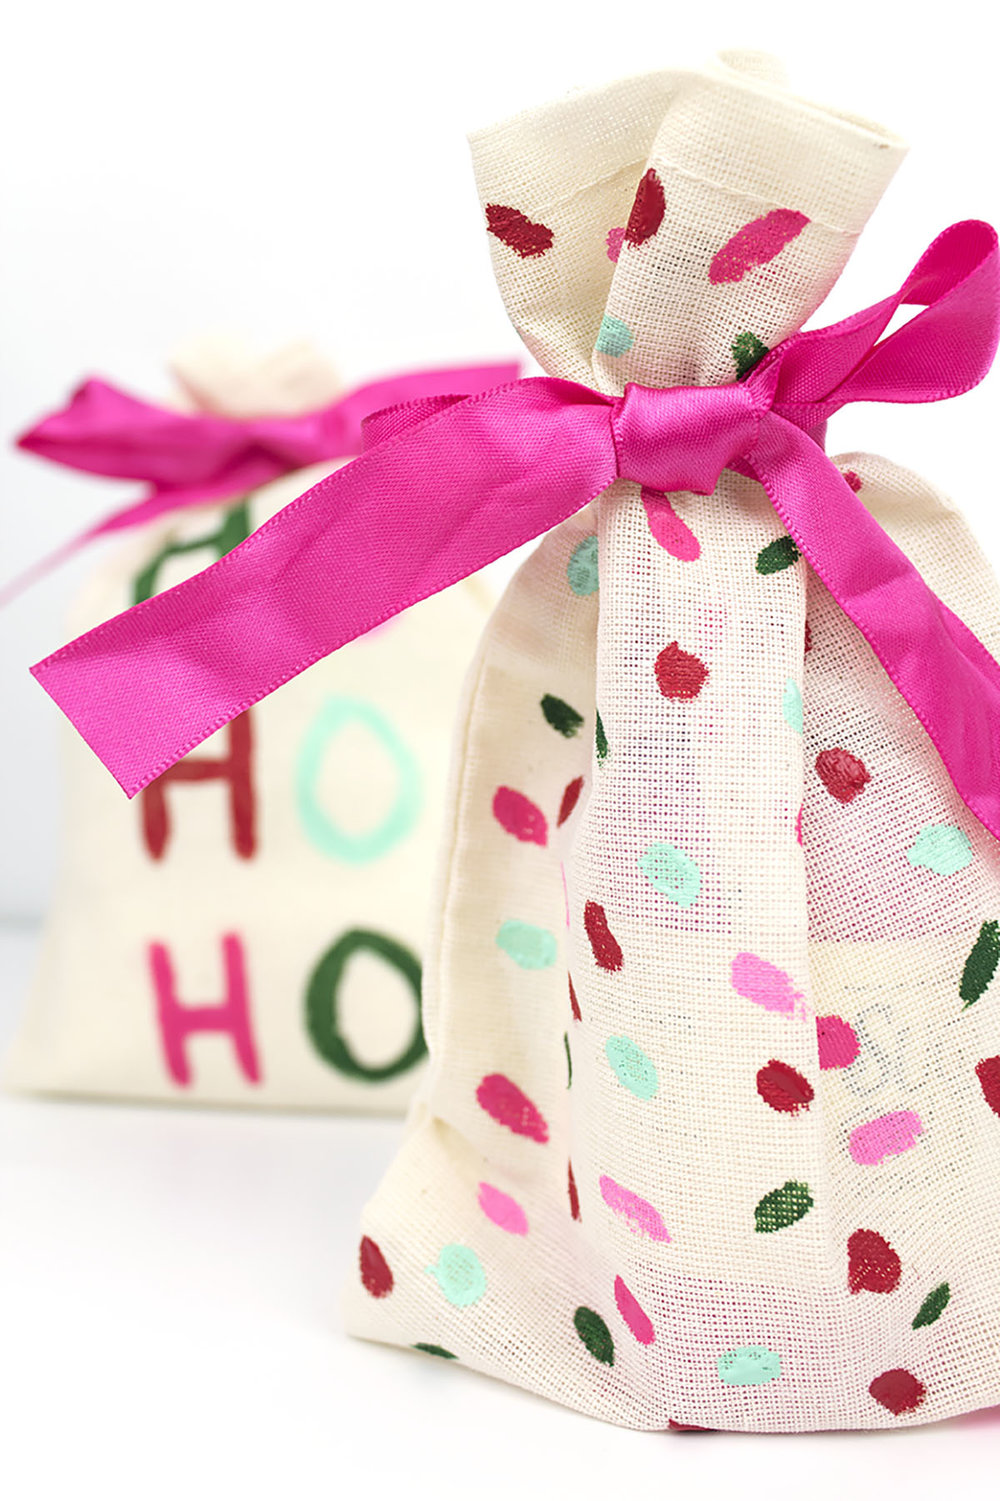 This Easy DIY holiday gift pouch is a perfect alternative to gift wrap! It's eco-friendly and reusable. Plus it's colorful and cute! Visit partyhardiy.com for more info. #giftwrap #christmasdiy #giftbag #christmascrafts #christmasgifts